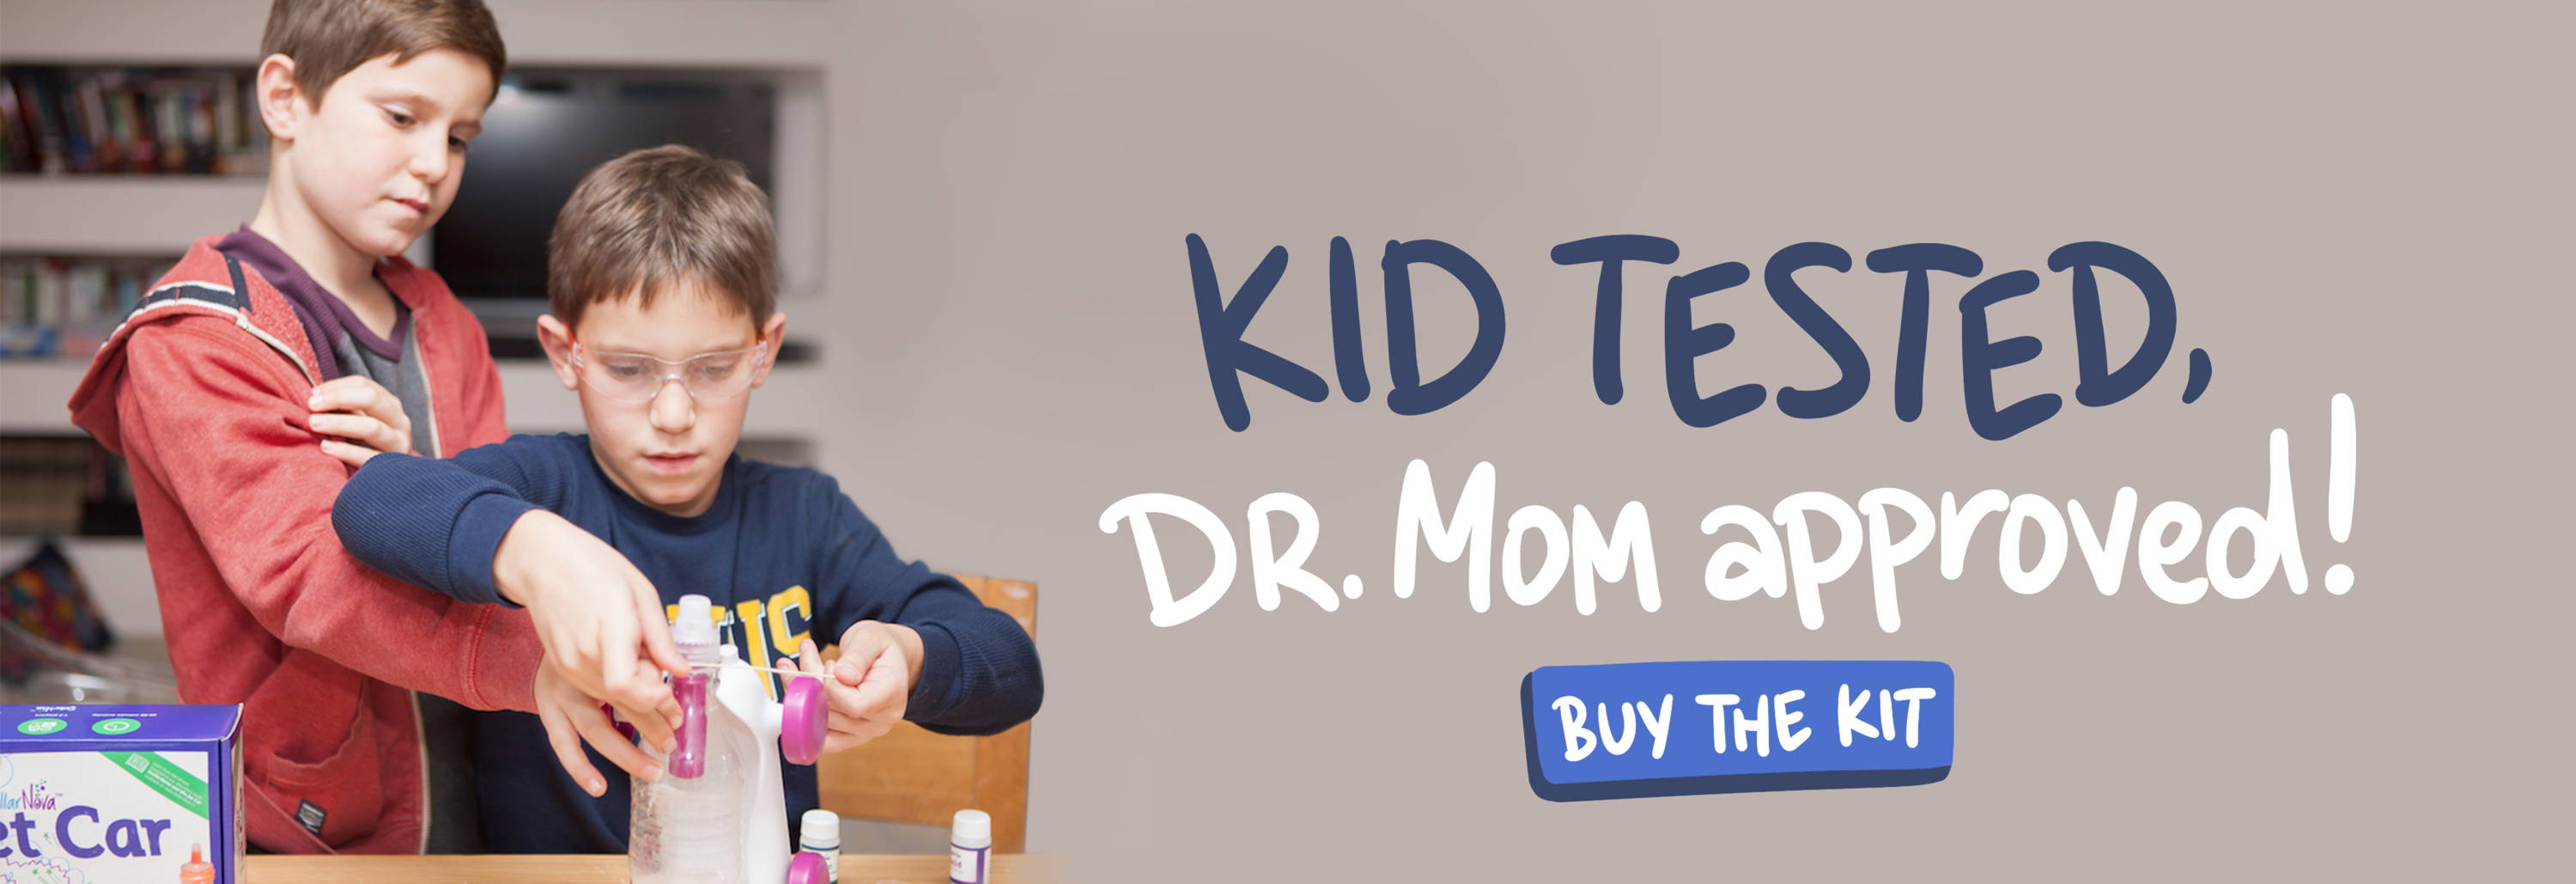 Kid tested, Dr. Mom approved science kits for kids to explore